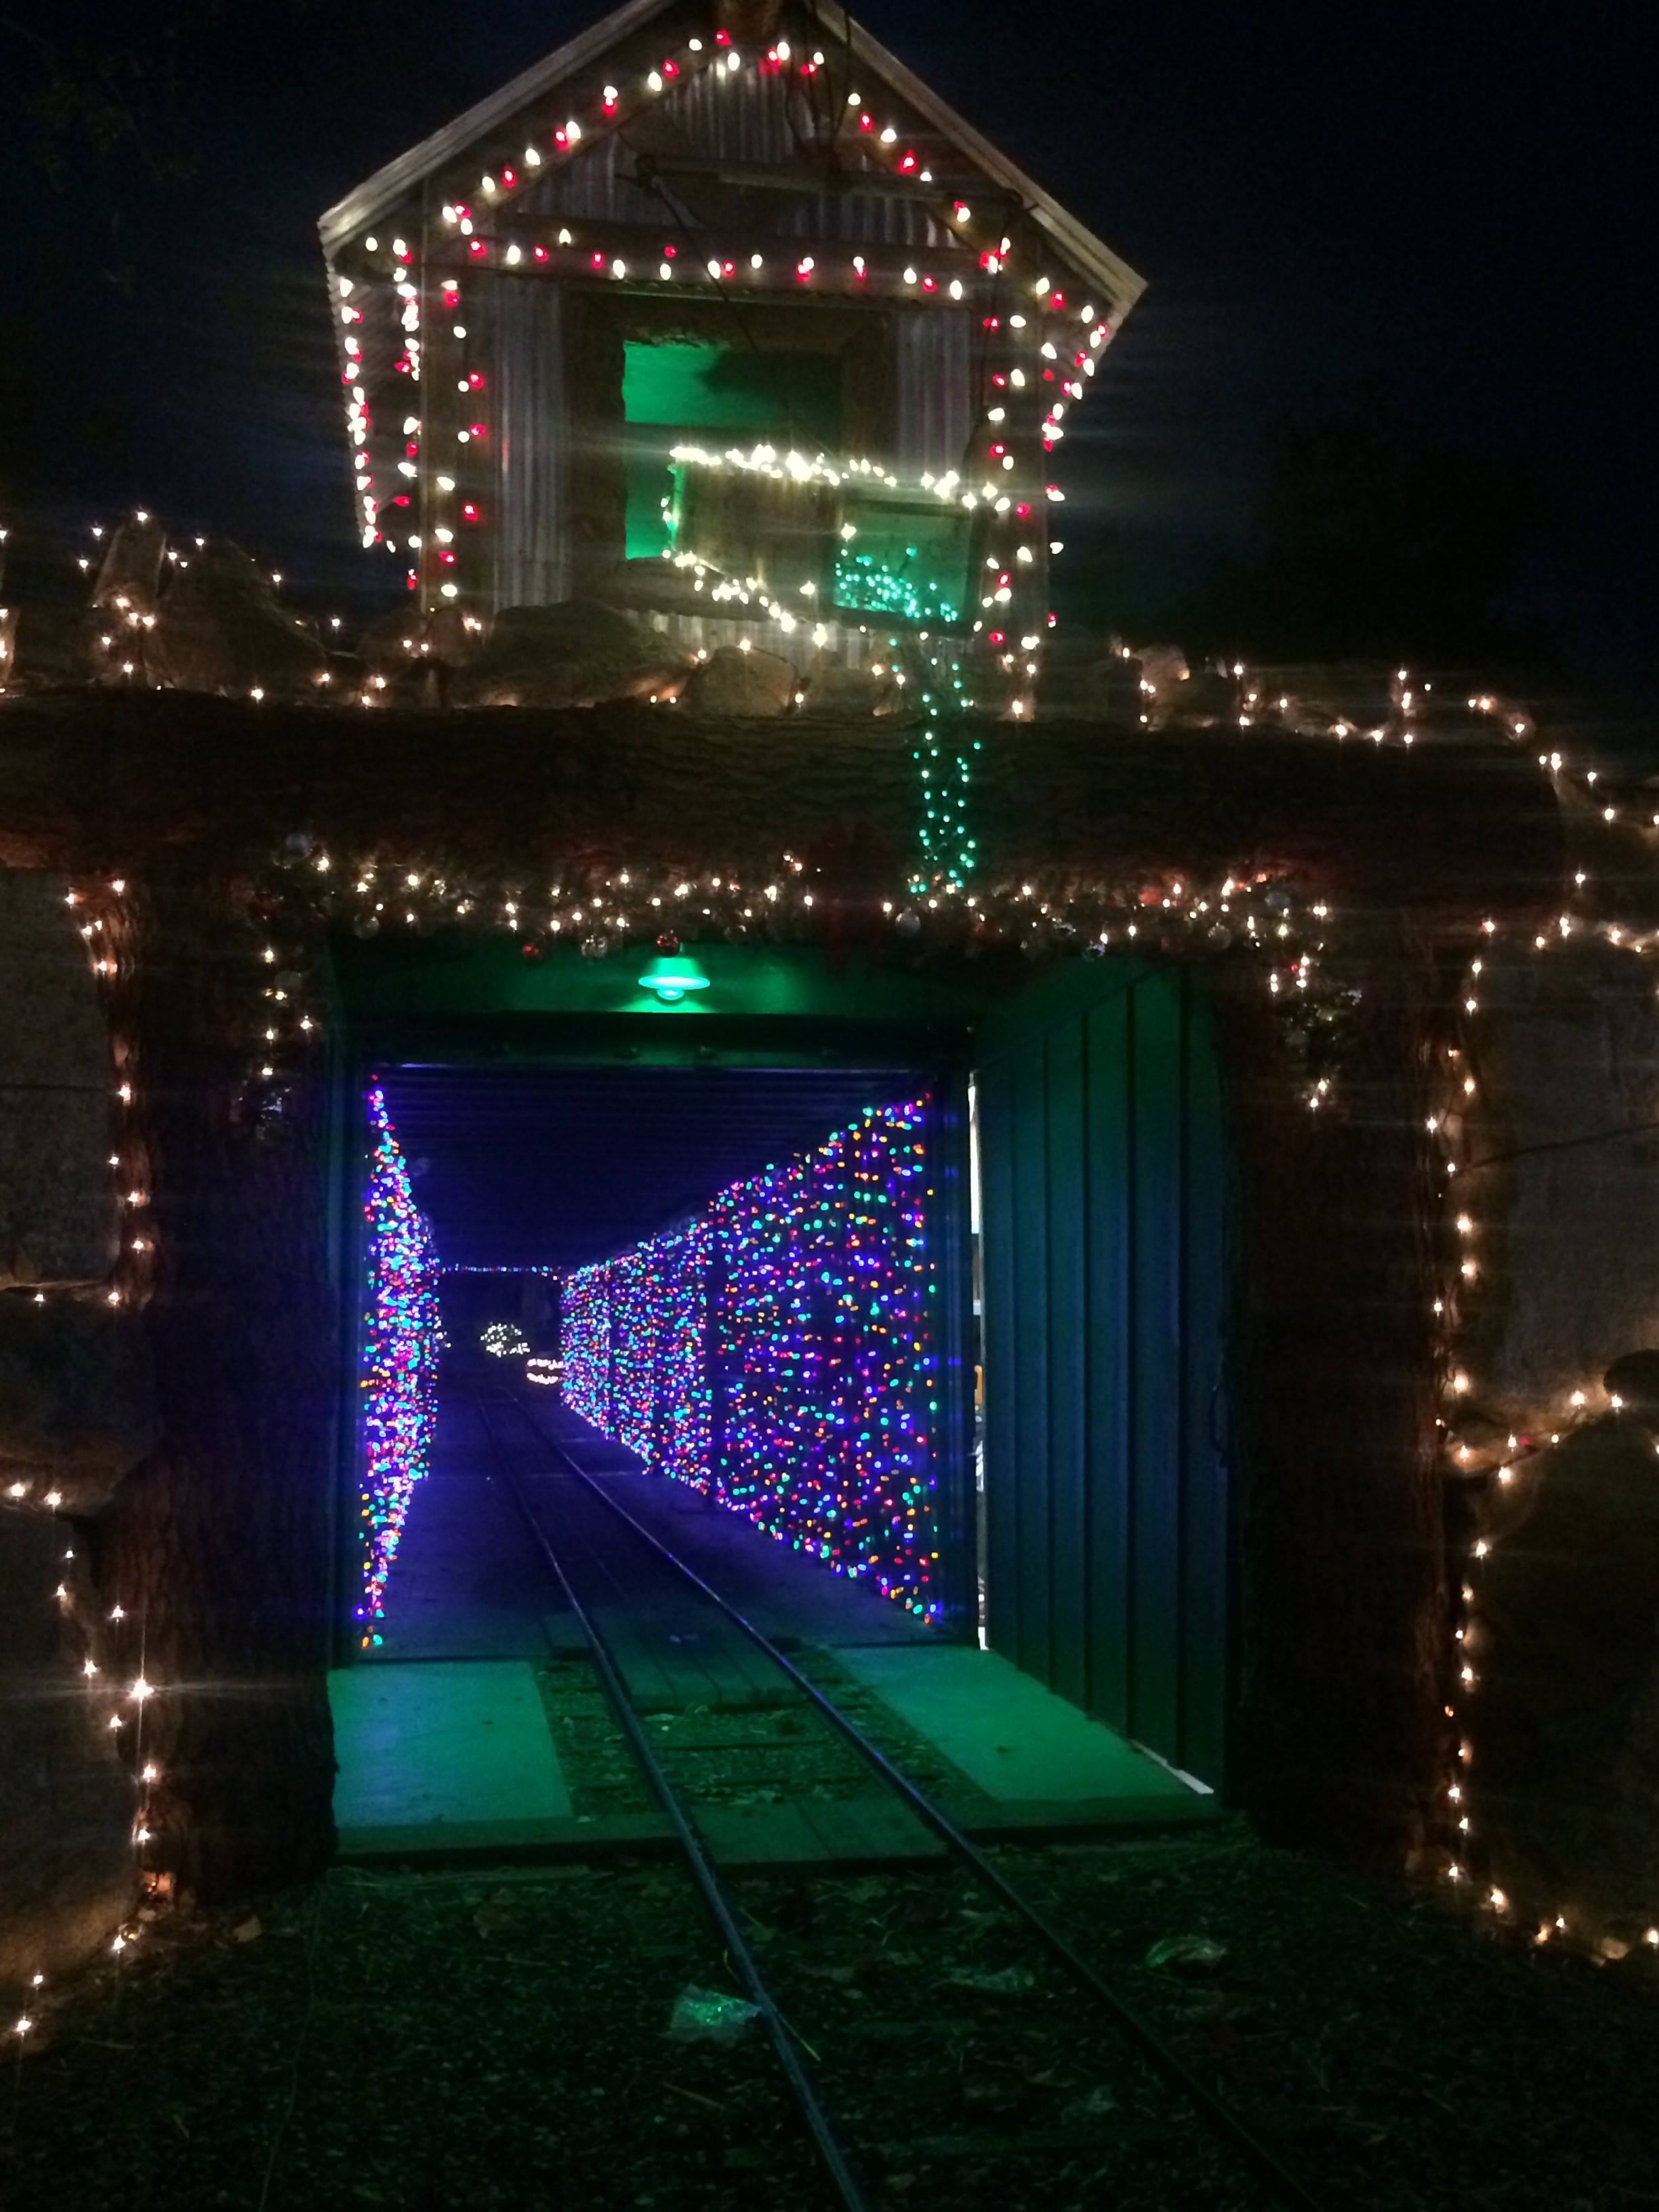 after visiting with santa hop back aboard the train and enjoy the colorful christmas lights and decorations as well as the magical tunnel of lights - Christmas Light Train